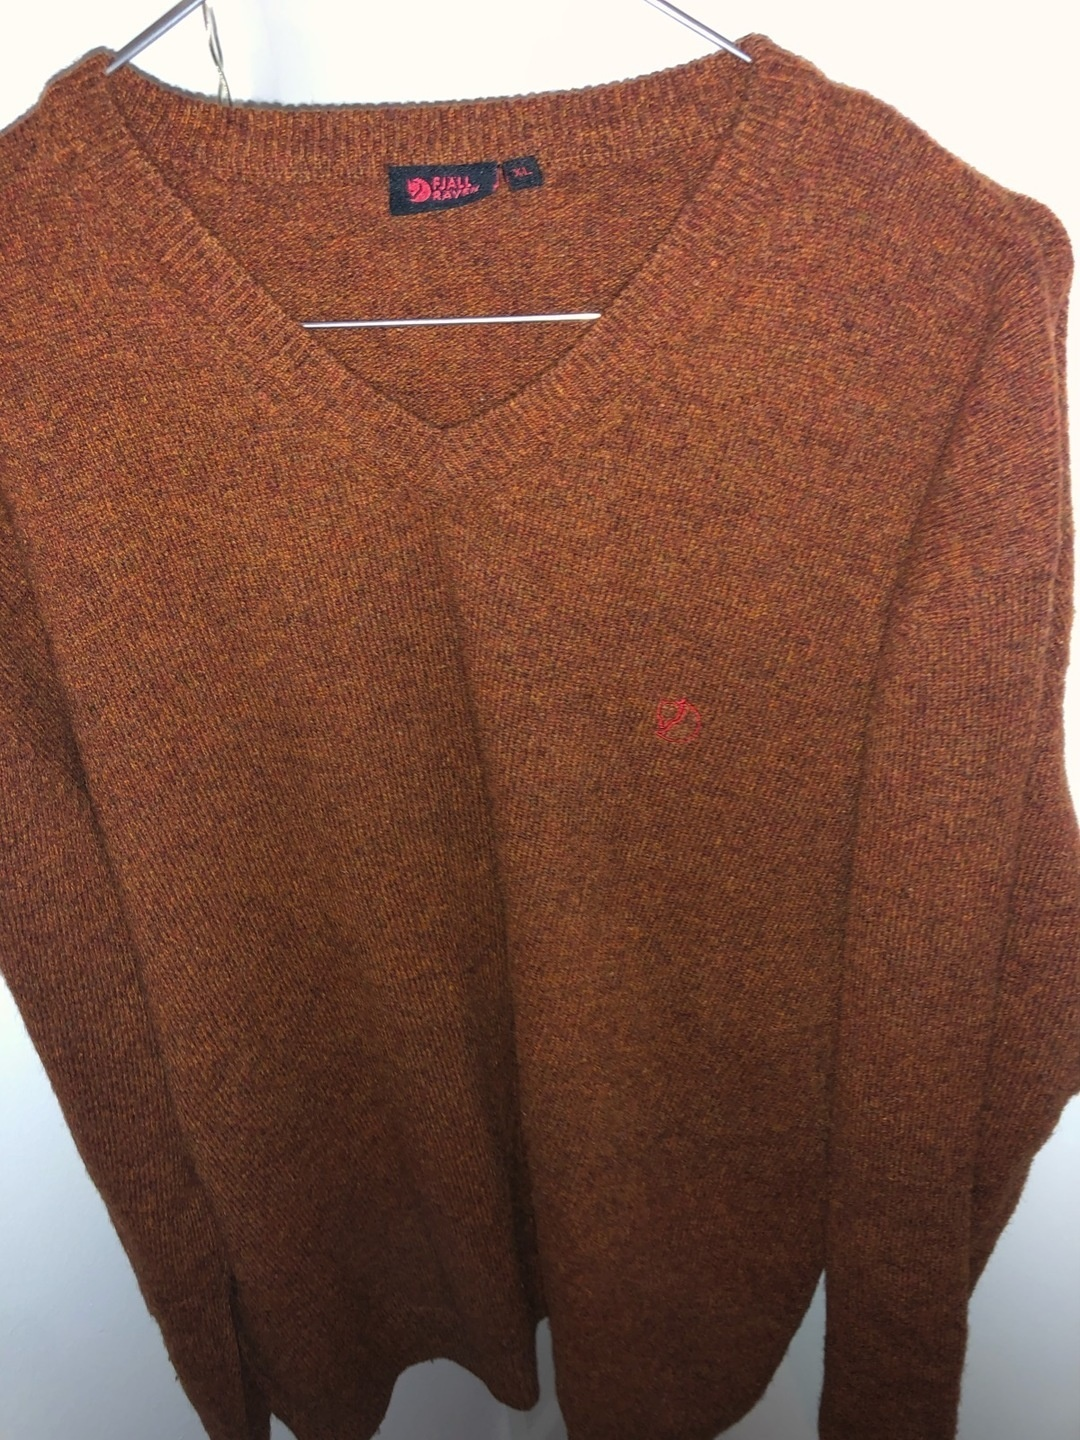 Women's jumpers & cardigans - FJÄLLRÄVEN photo 1